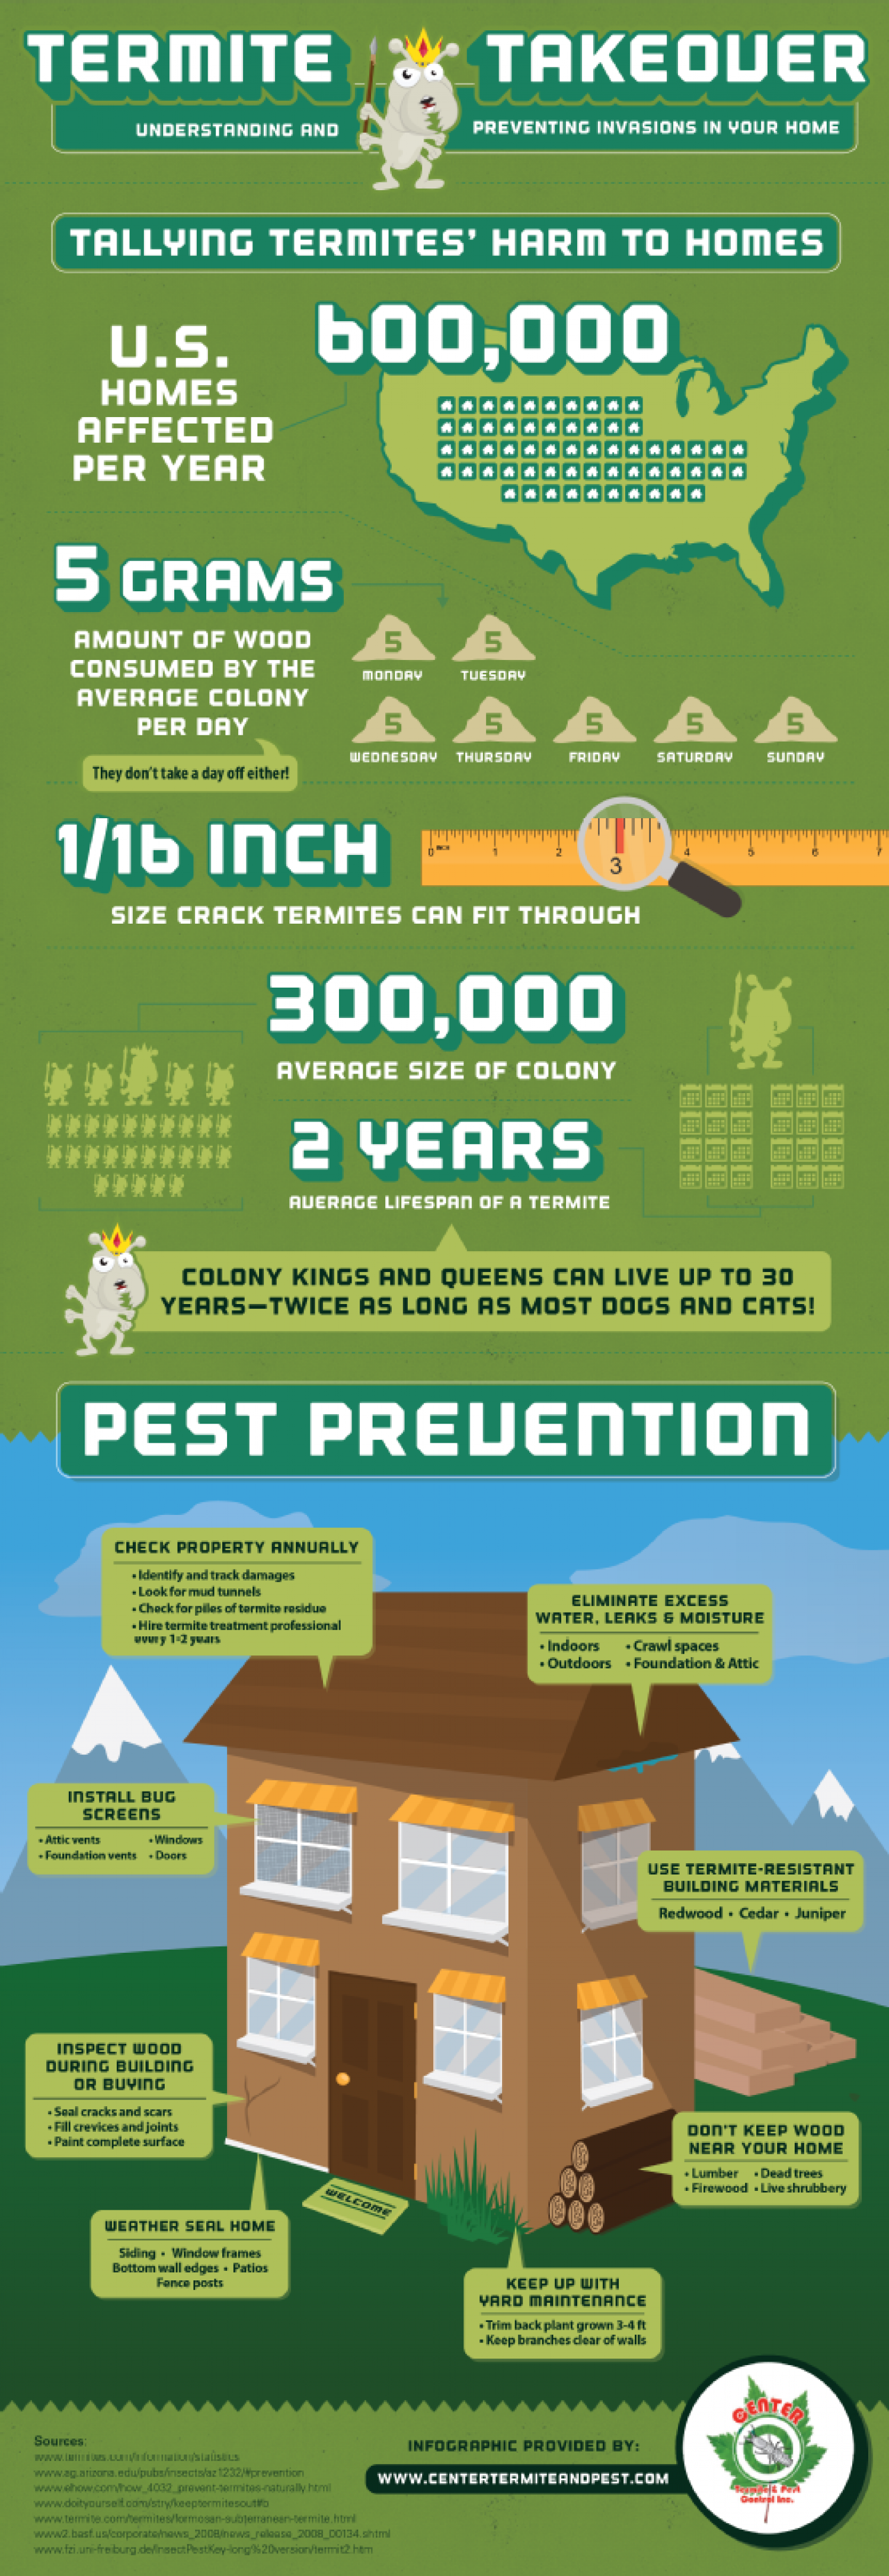 Termite Takeover: Understanding and Preventing Invasions in Your Home Infographic